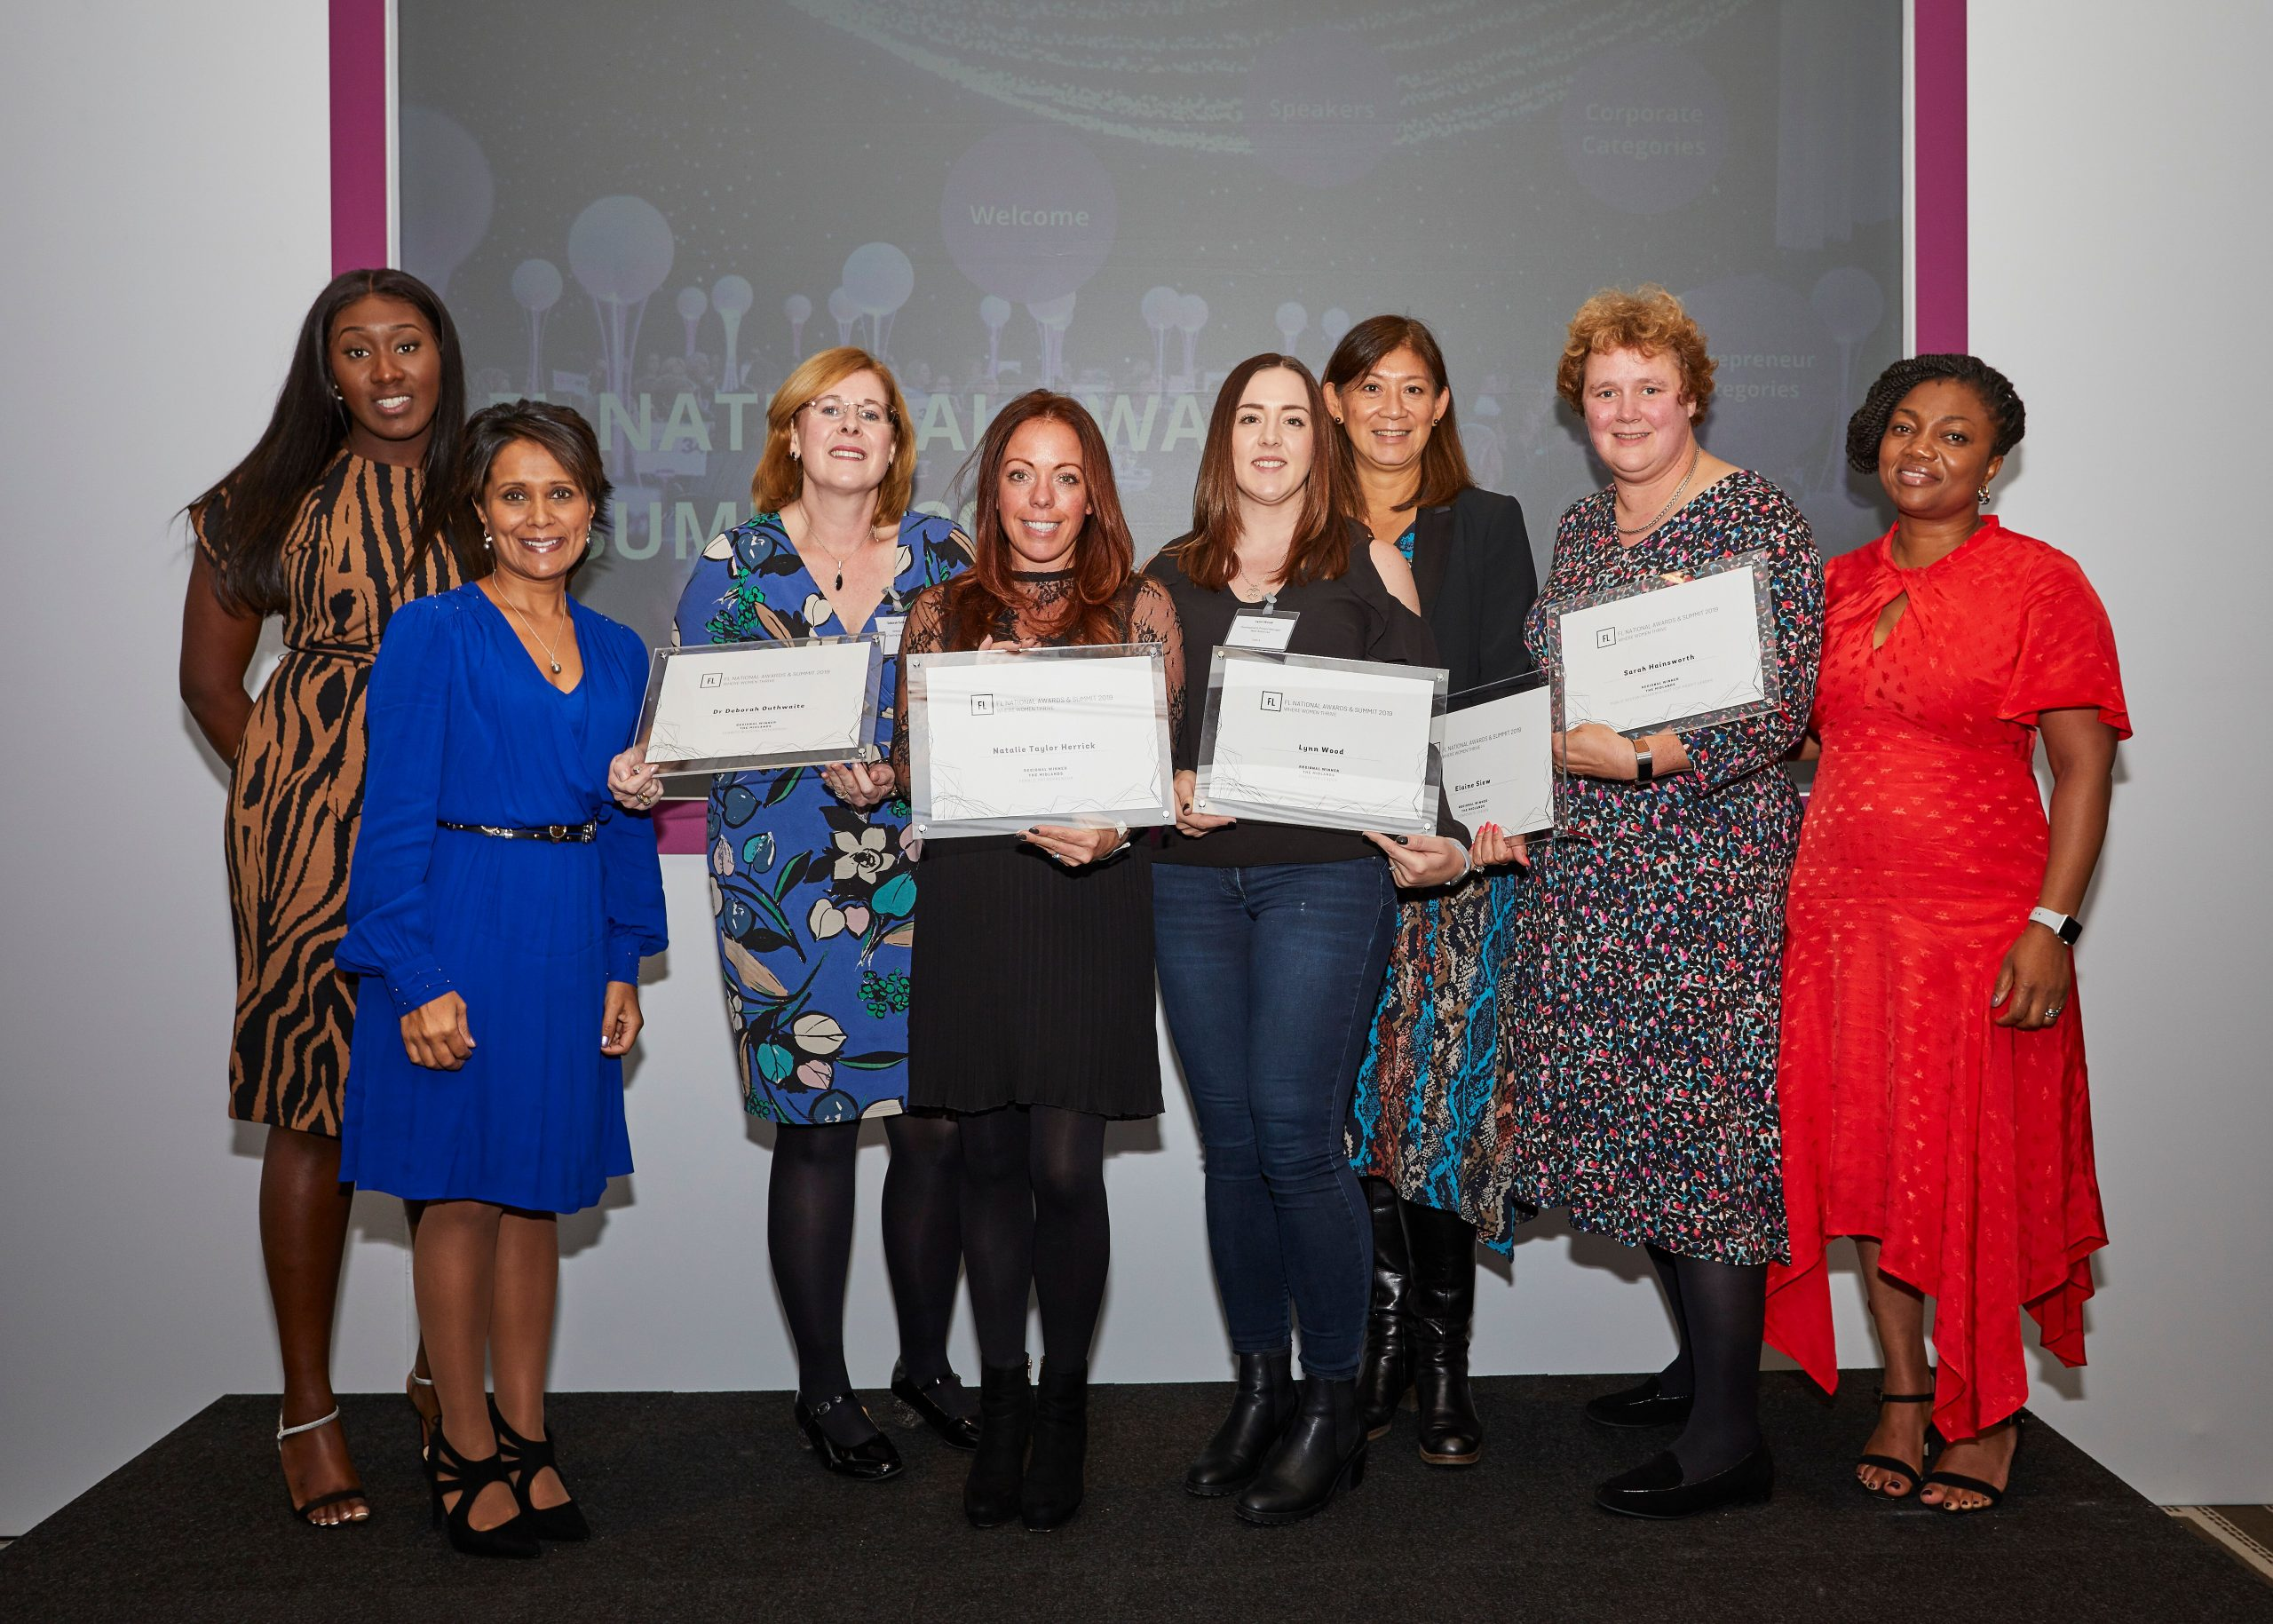 Forward Ladies Celebrates the Success of Business Women in Midlands